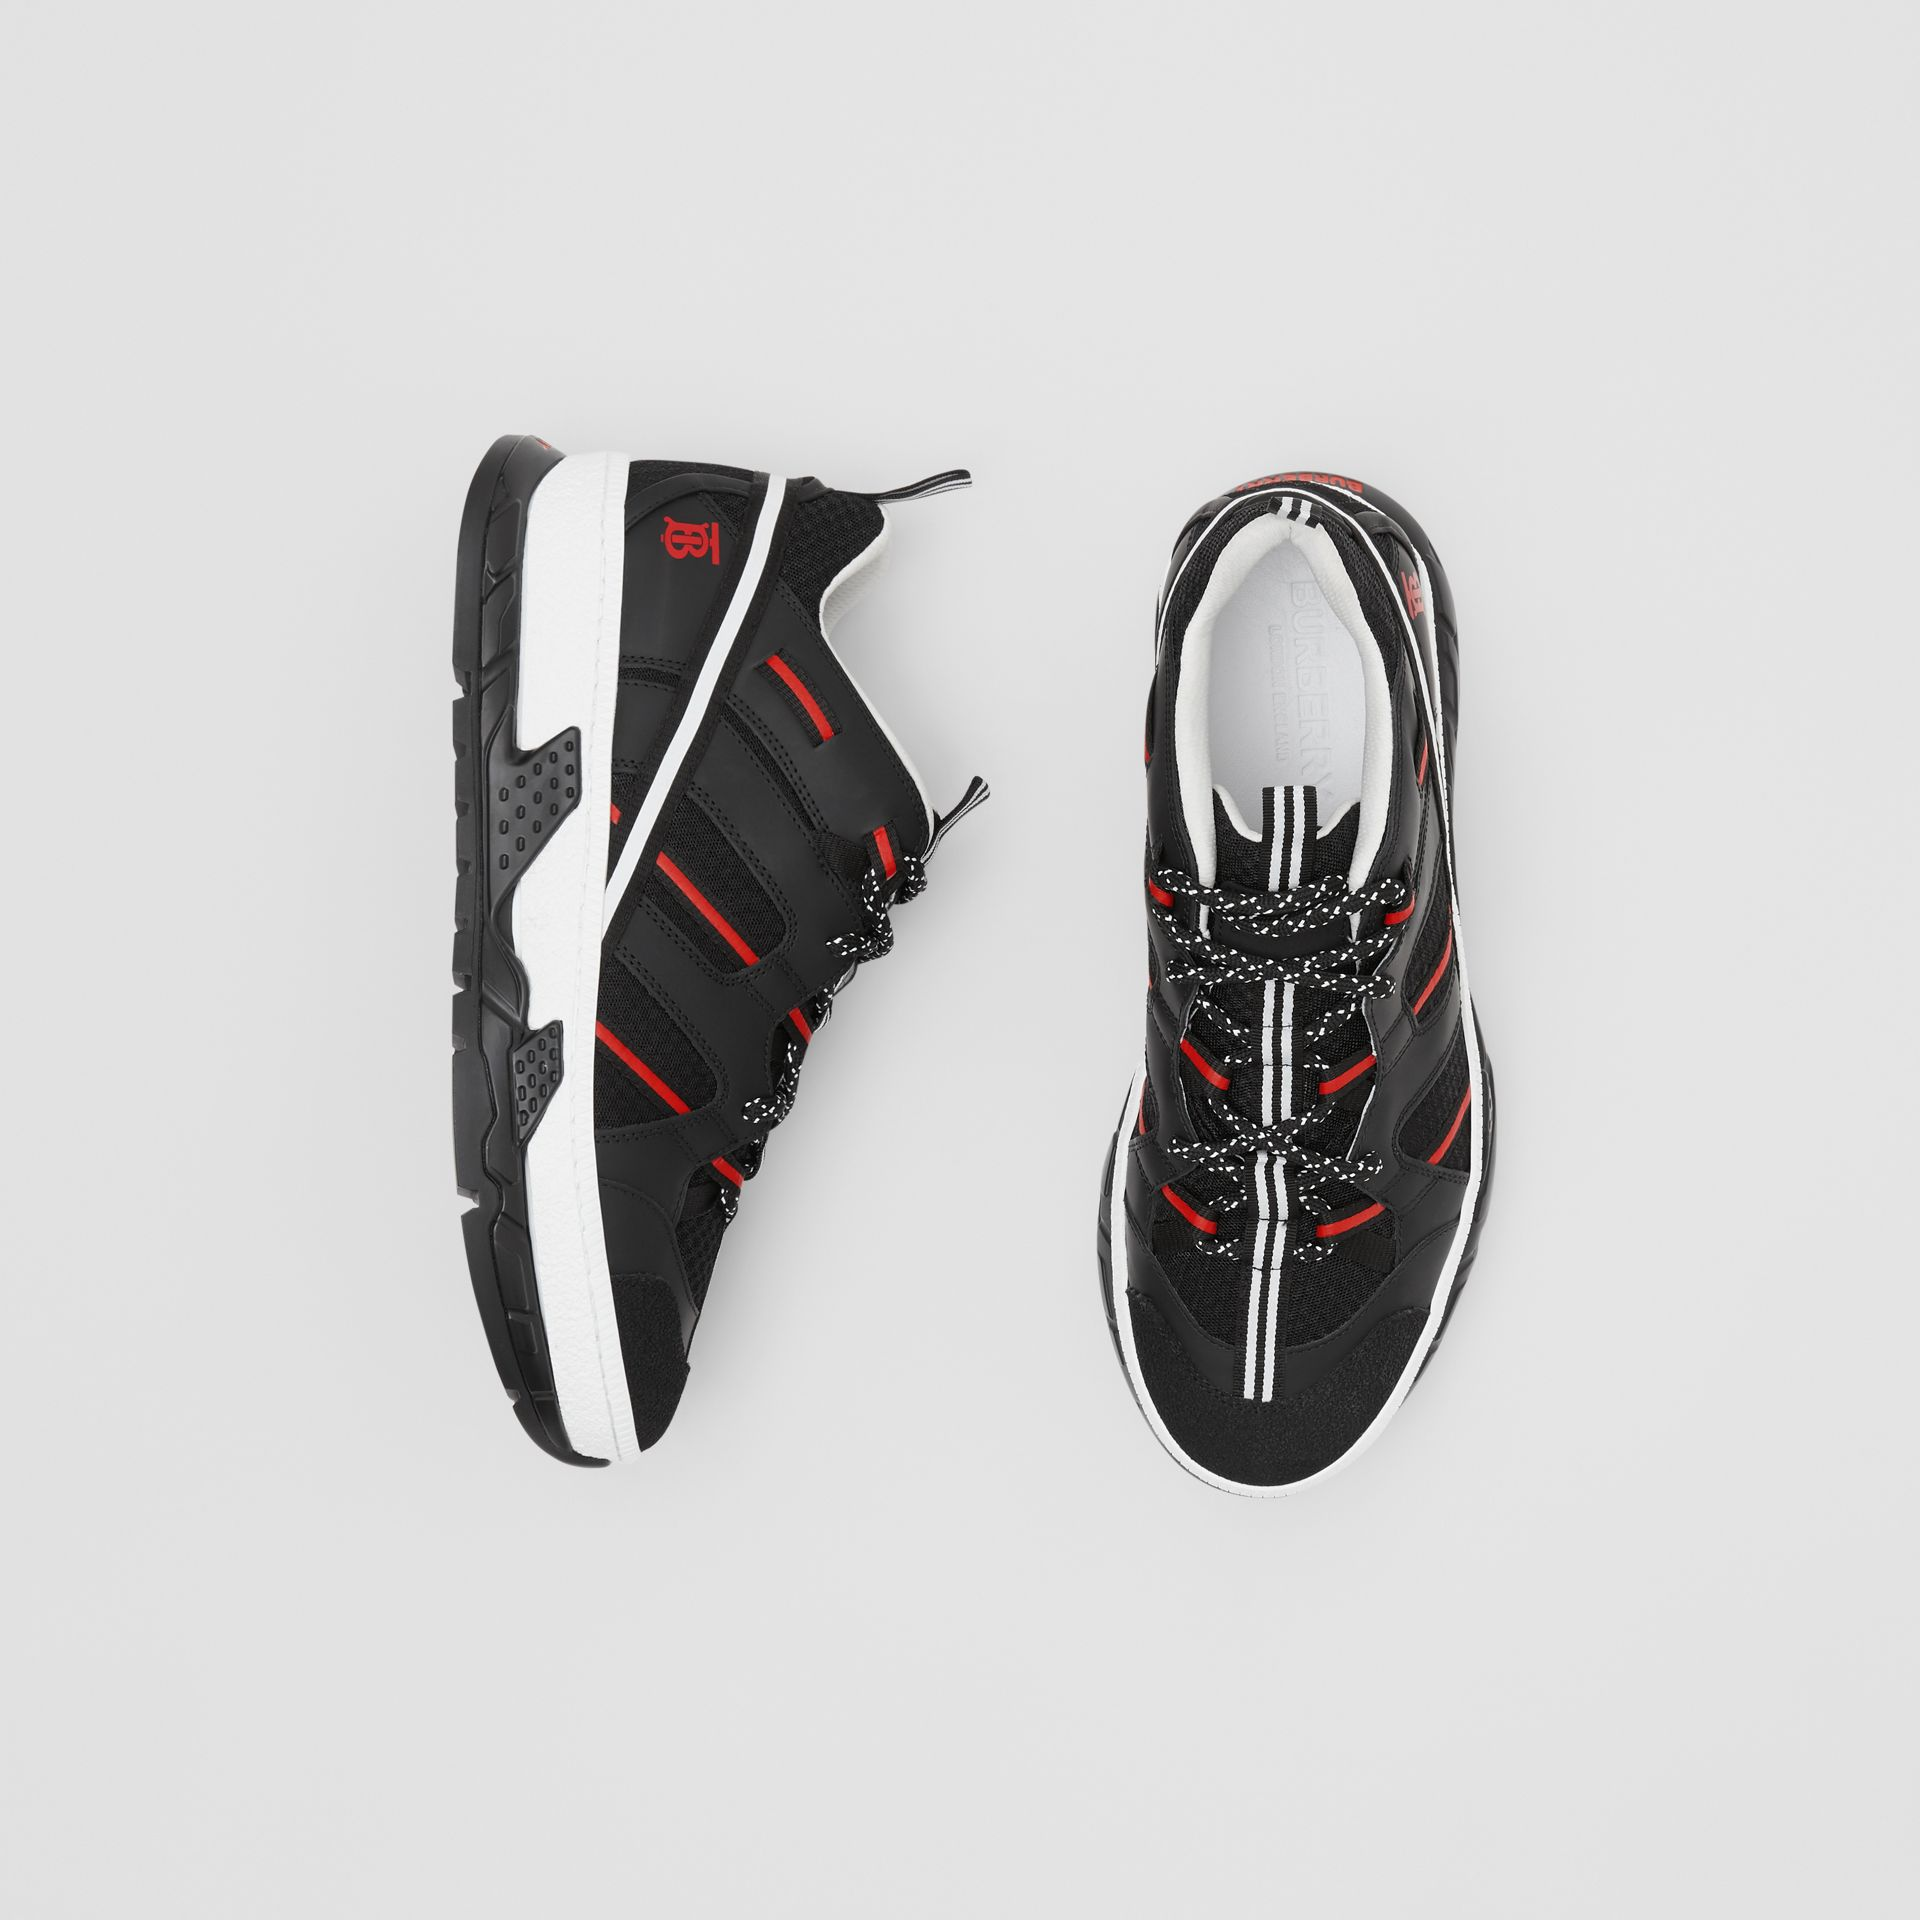 Sneakers Union en filet et nubuck (Noir/rouge) - Homme | Burberry - photo de la galerie 0